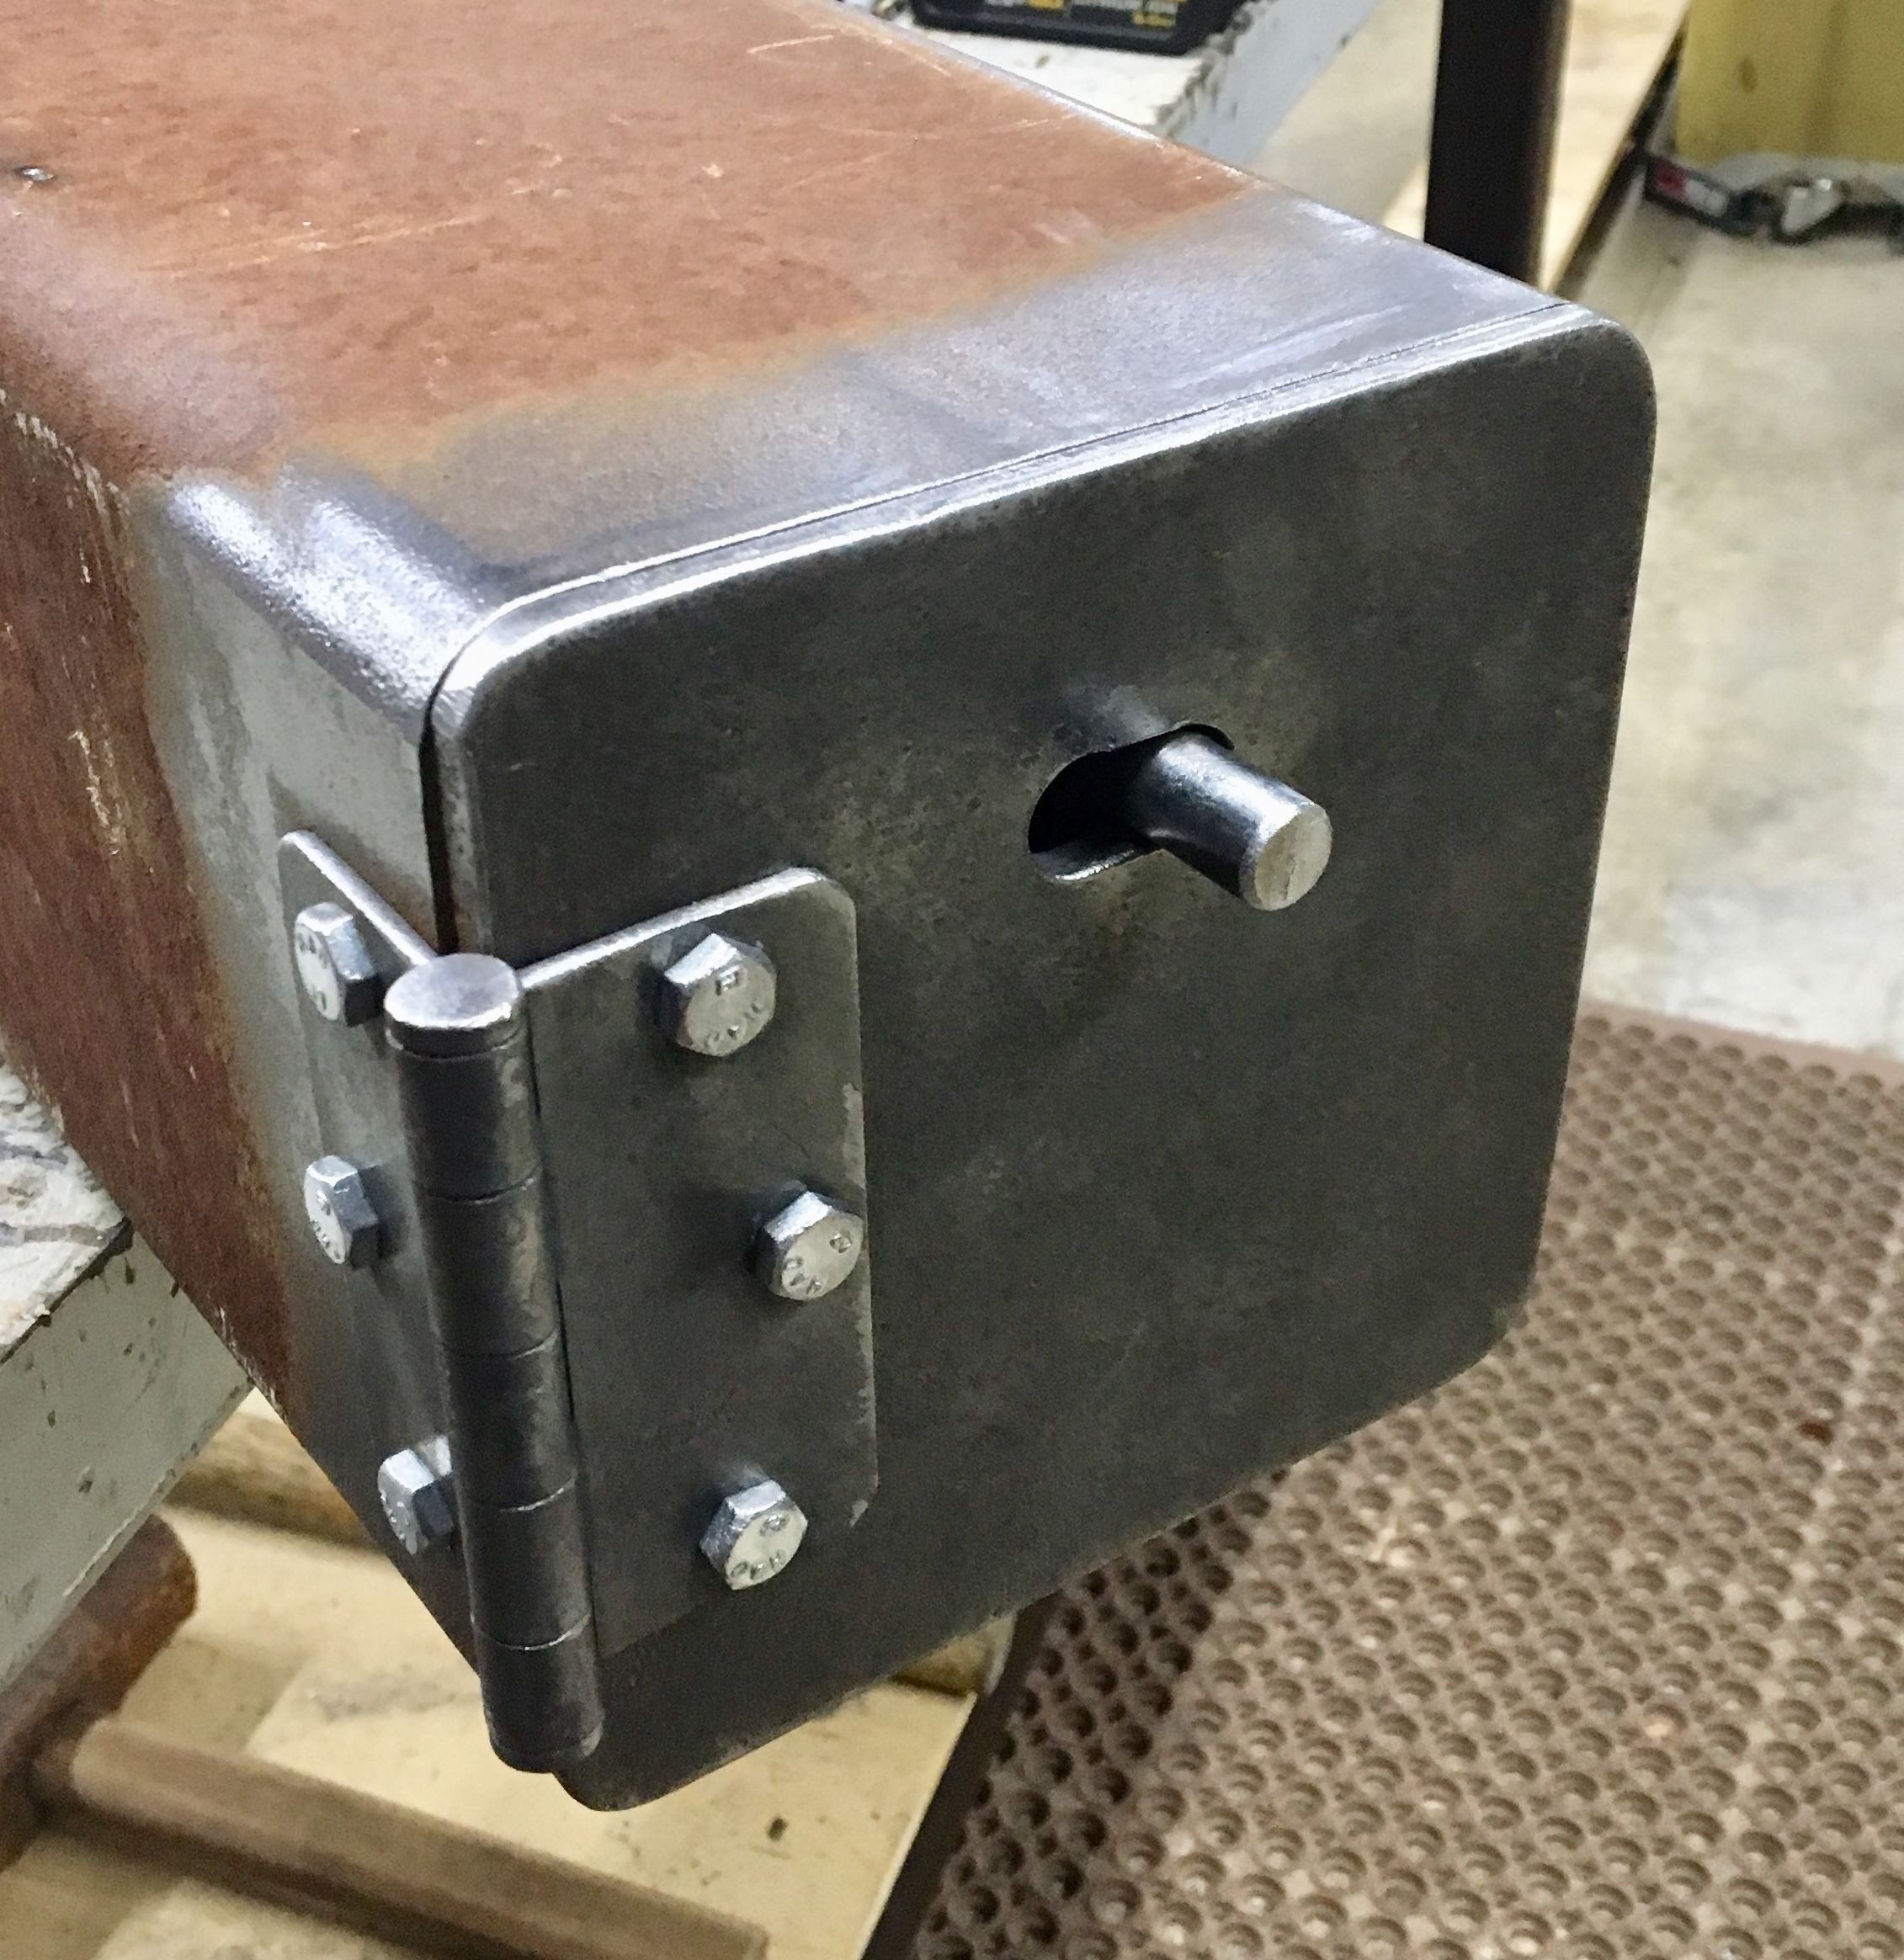 Door Latch Welding Projects Welding And Fabrication Metal Working Projects